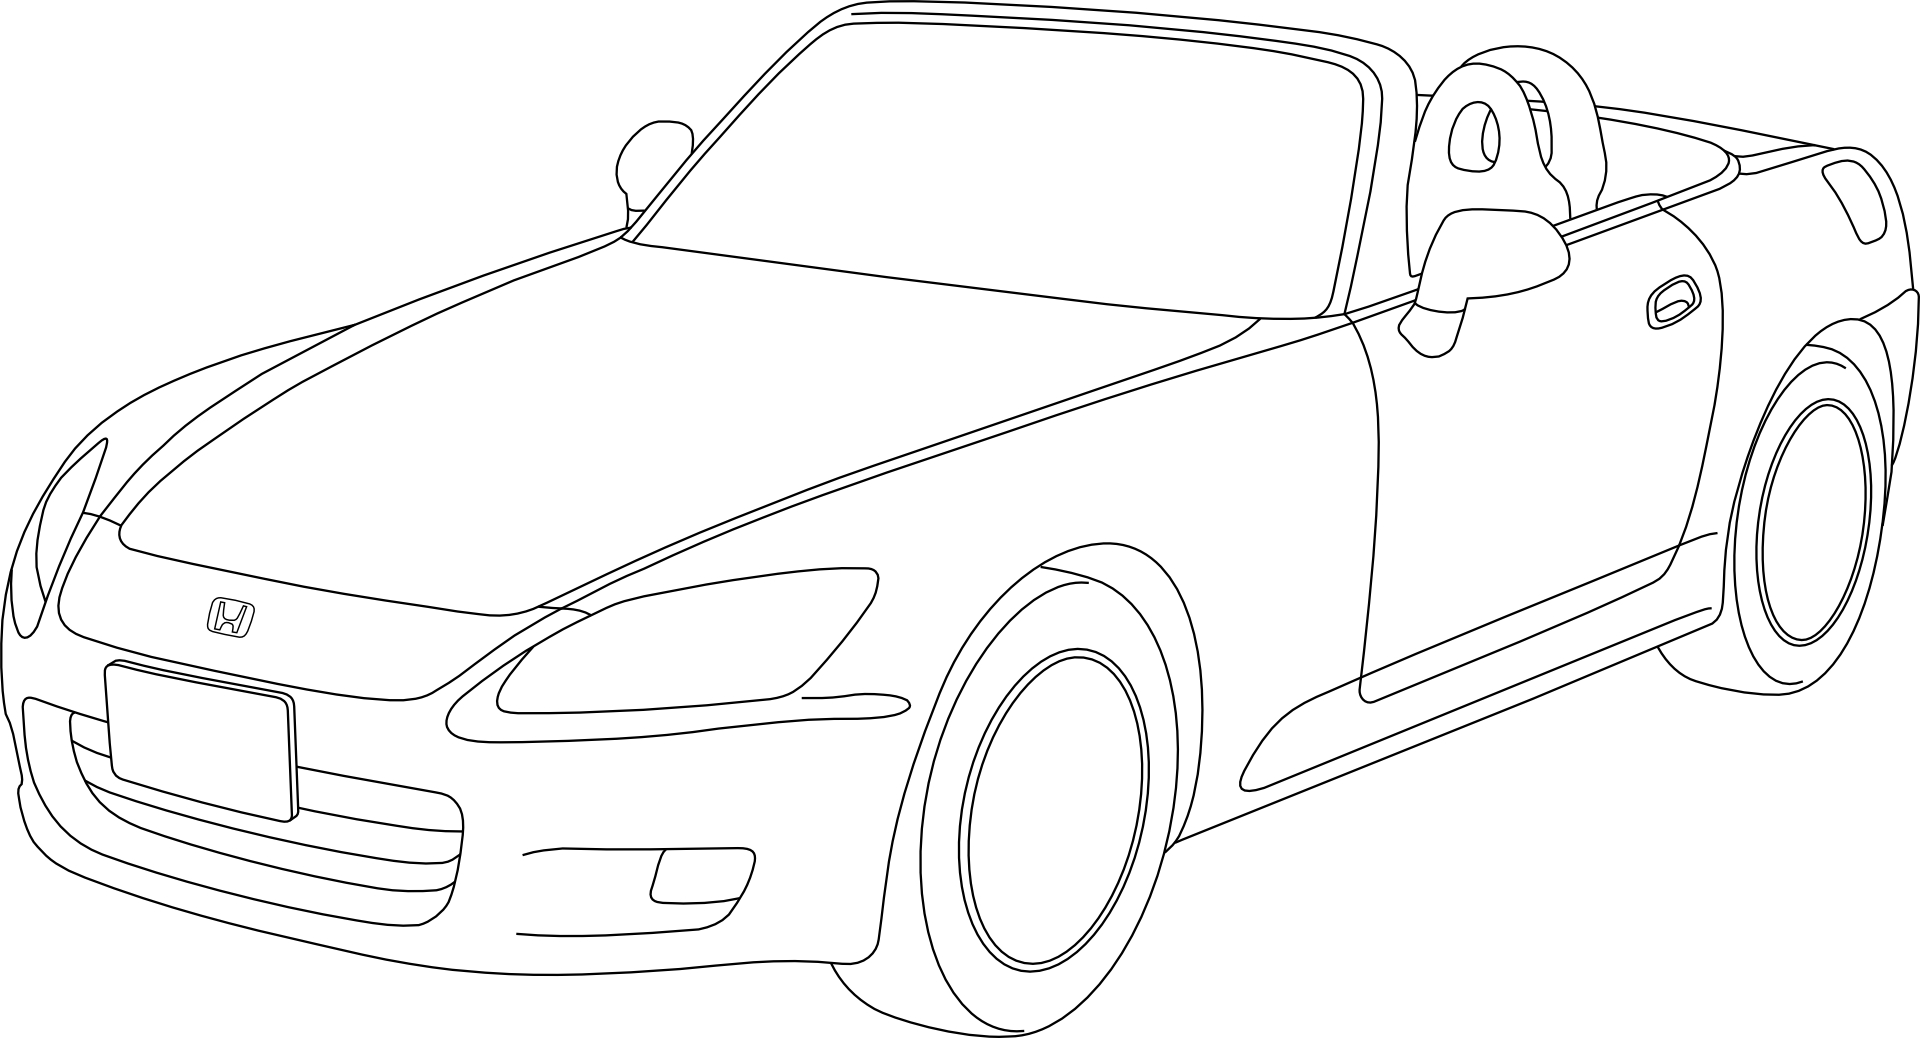 stick drawing,car vector